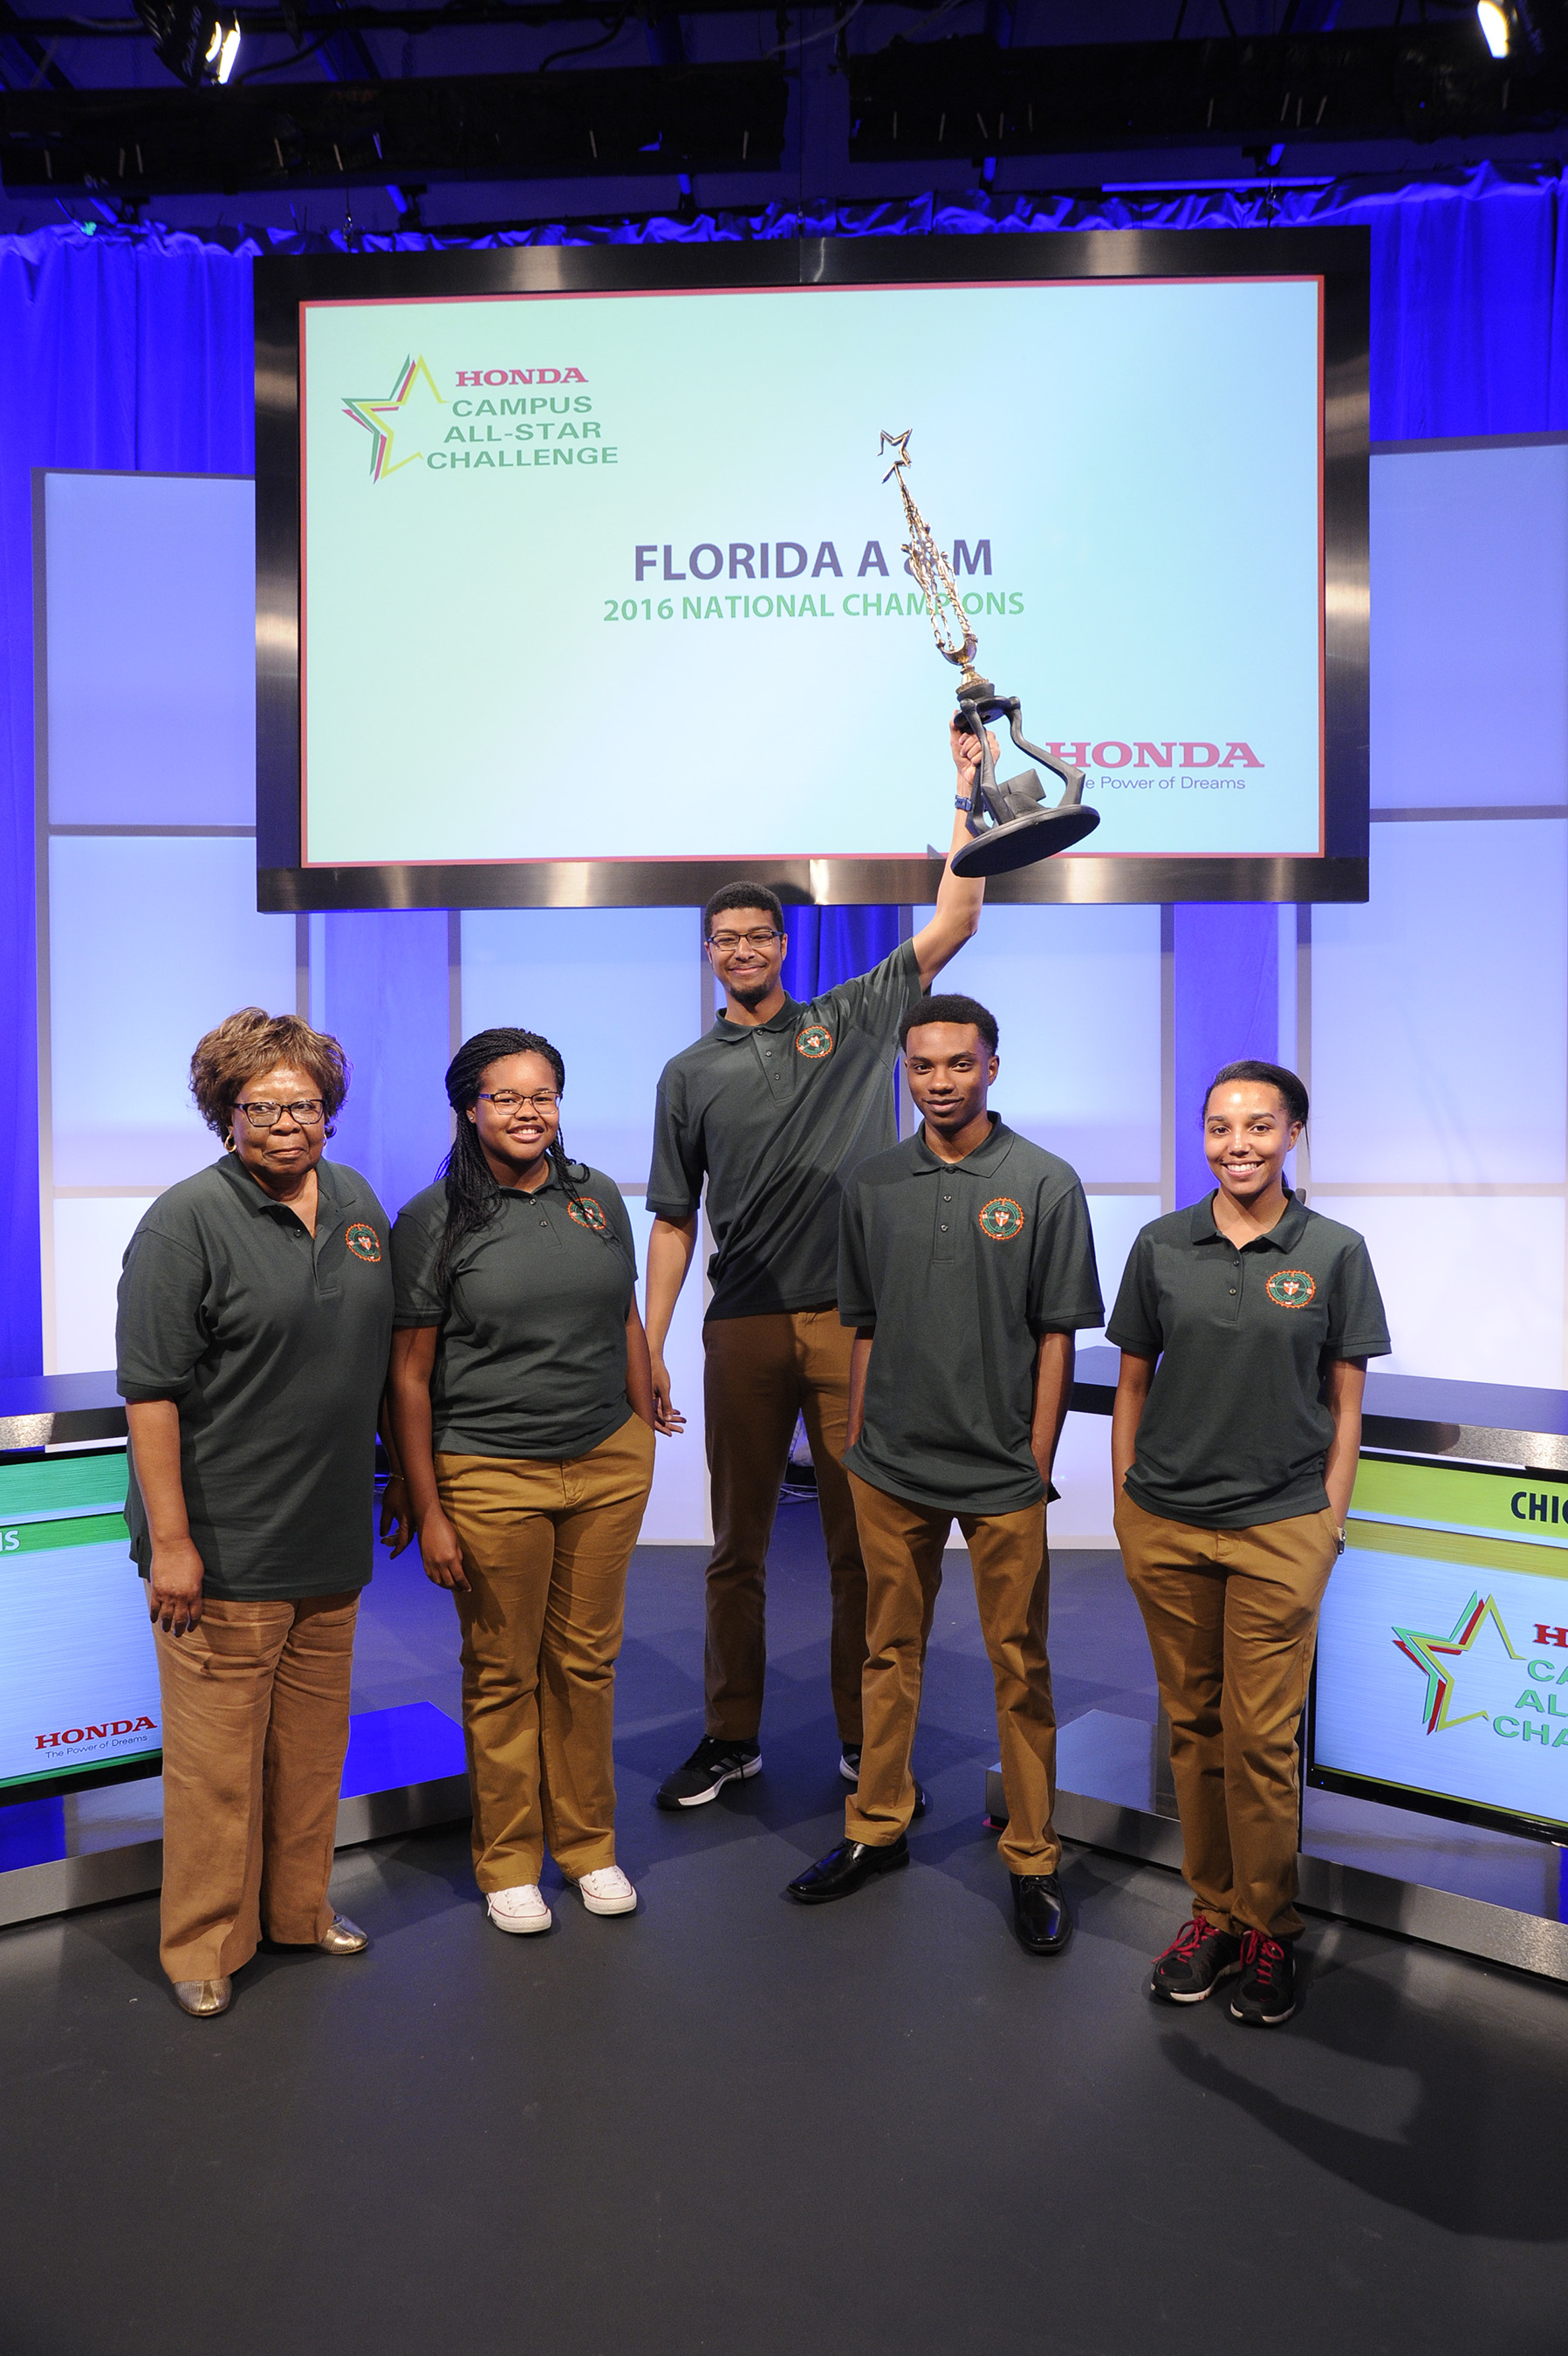 The team from Florida A&M University celebrates their win of the 27th Honda Campus All-Star Challenge National Championship with their coach, Dr. Vivian Hobbs (left).